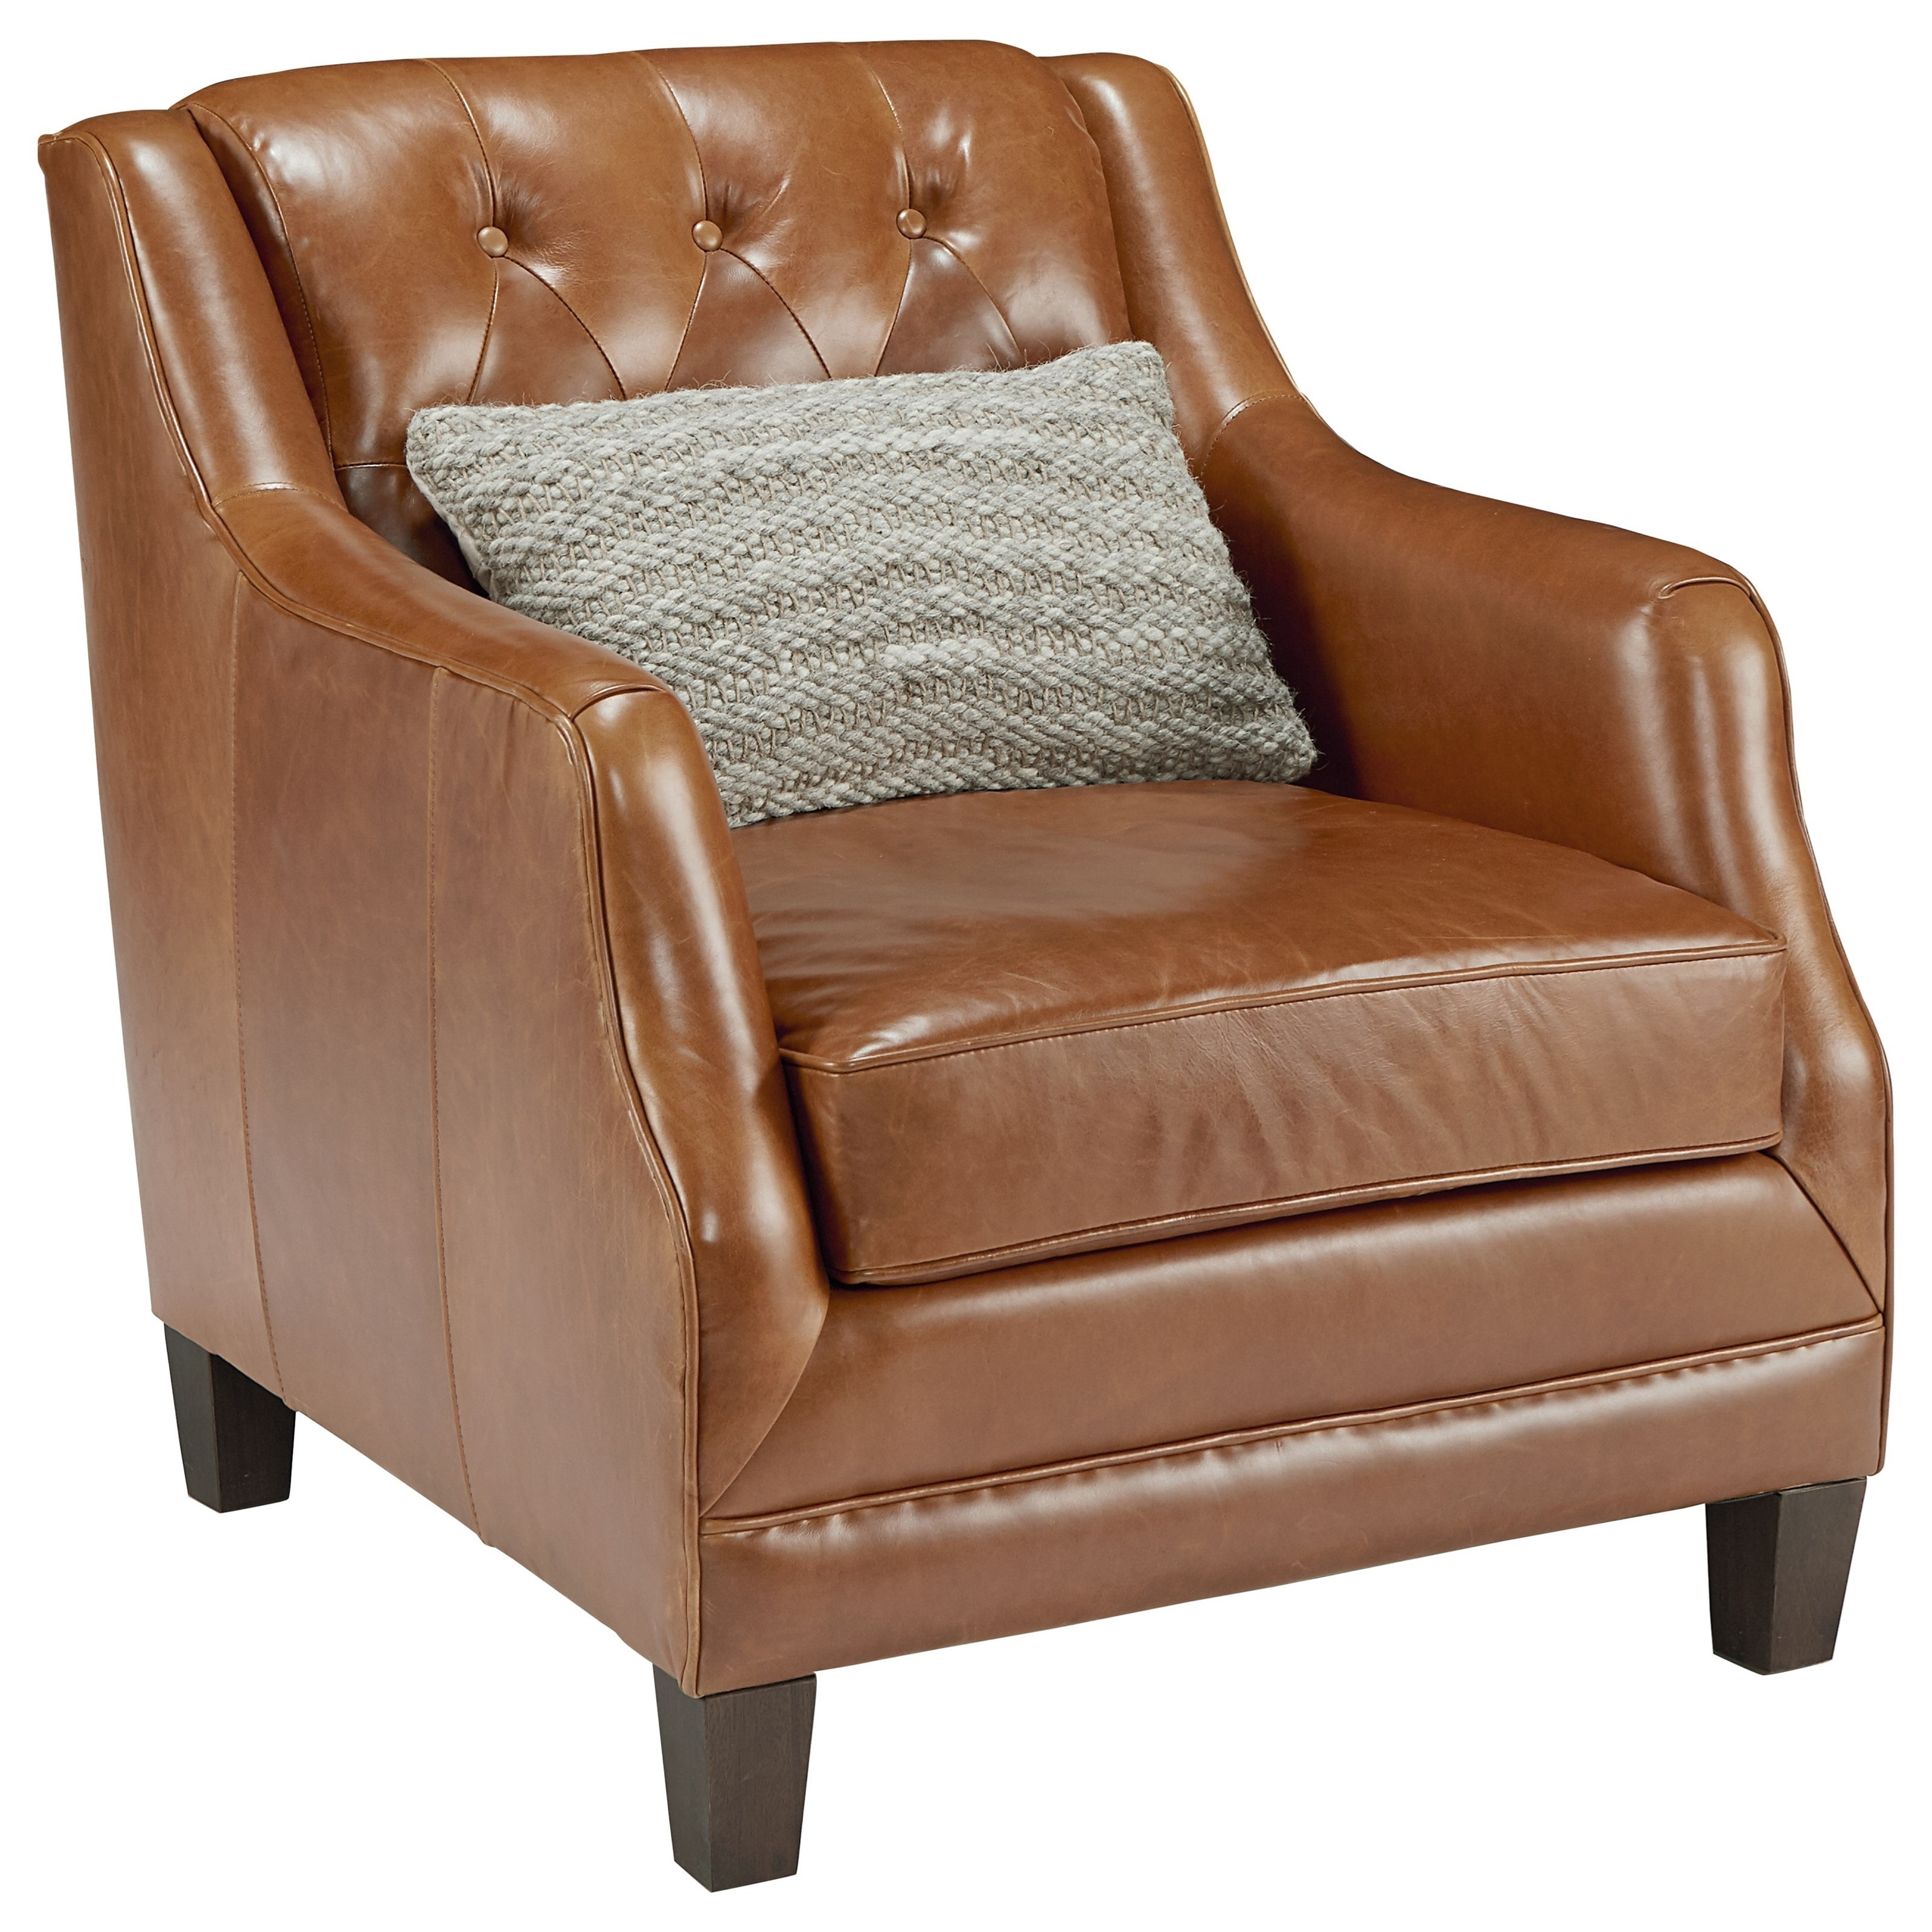 Inspiration about Magnolia Home Revival Arm Chairs Intended For Most Current Leather Upholstered Chair With Button Tuftingmagnolia Home (#8 of 20)